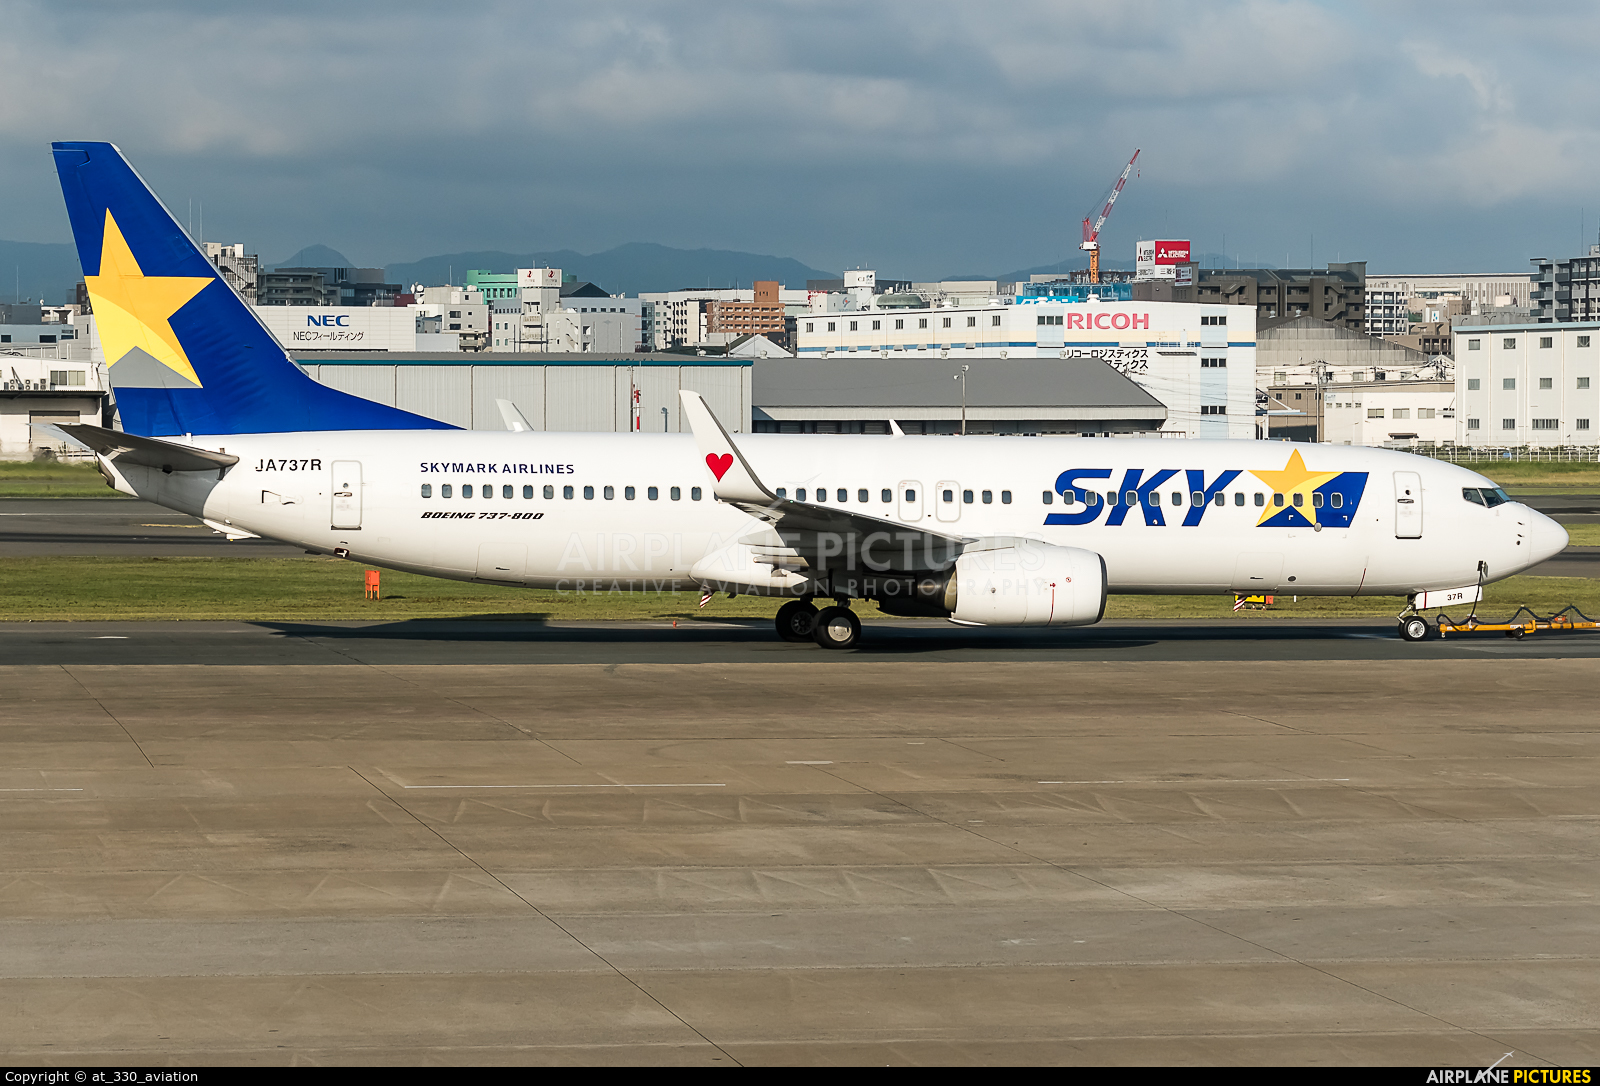 Skymark Airlines JA737R aircraft at Fukuoka